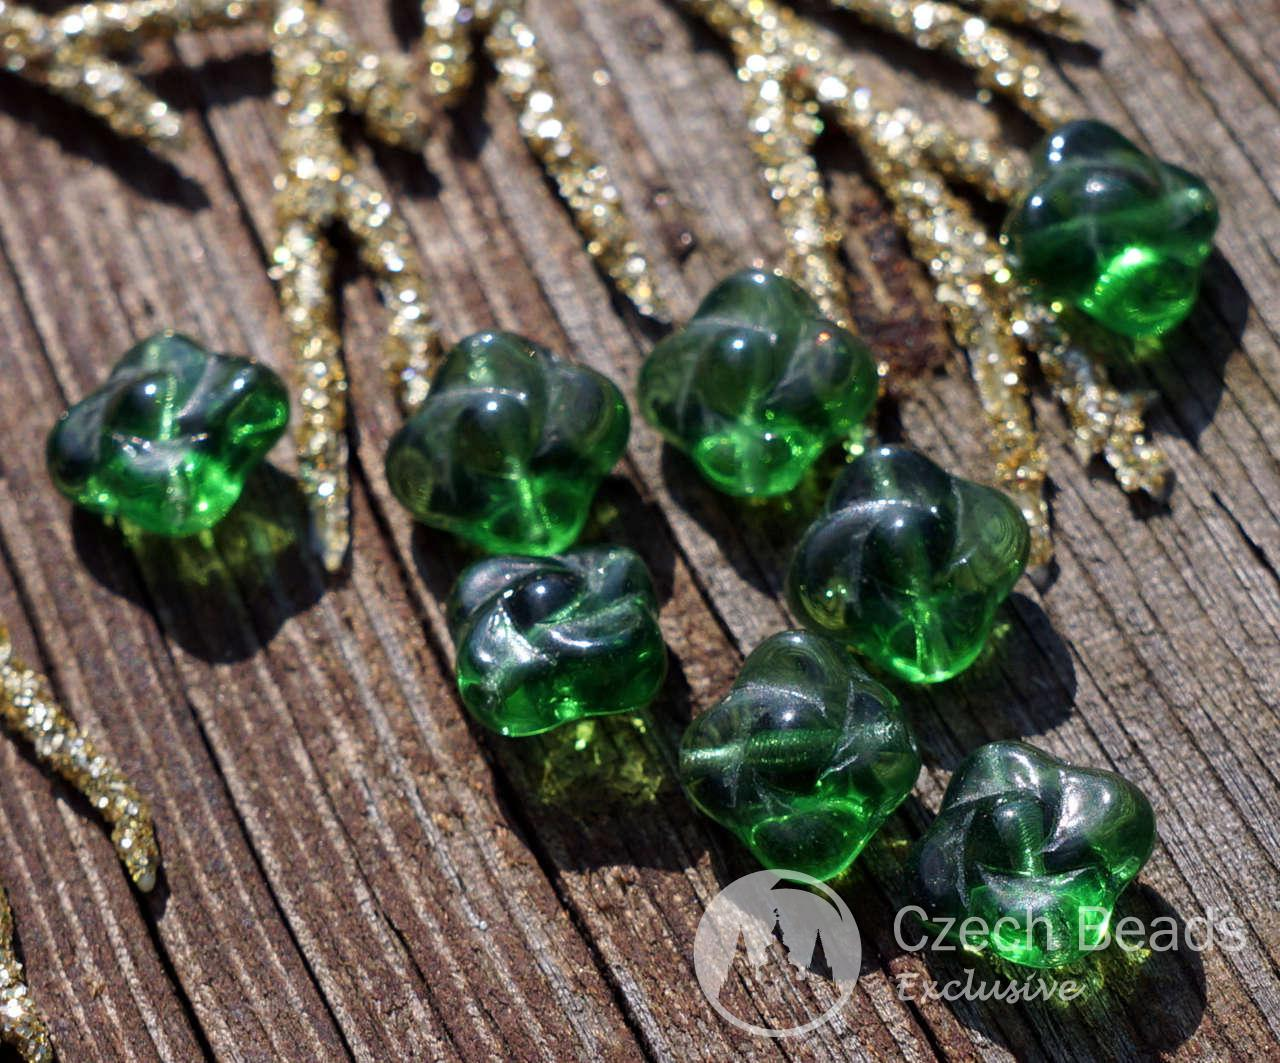 Clear Green Czech Glass Flower Beads Flat Czech Flower Beads Green Czech Flower Beads Glass Flower Bead Bohemian Carved Flower Bead 8mm 20pc for $2.4 from Czech Beads Exclusive